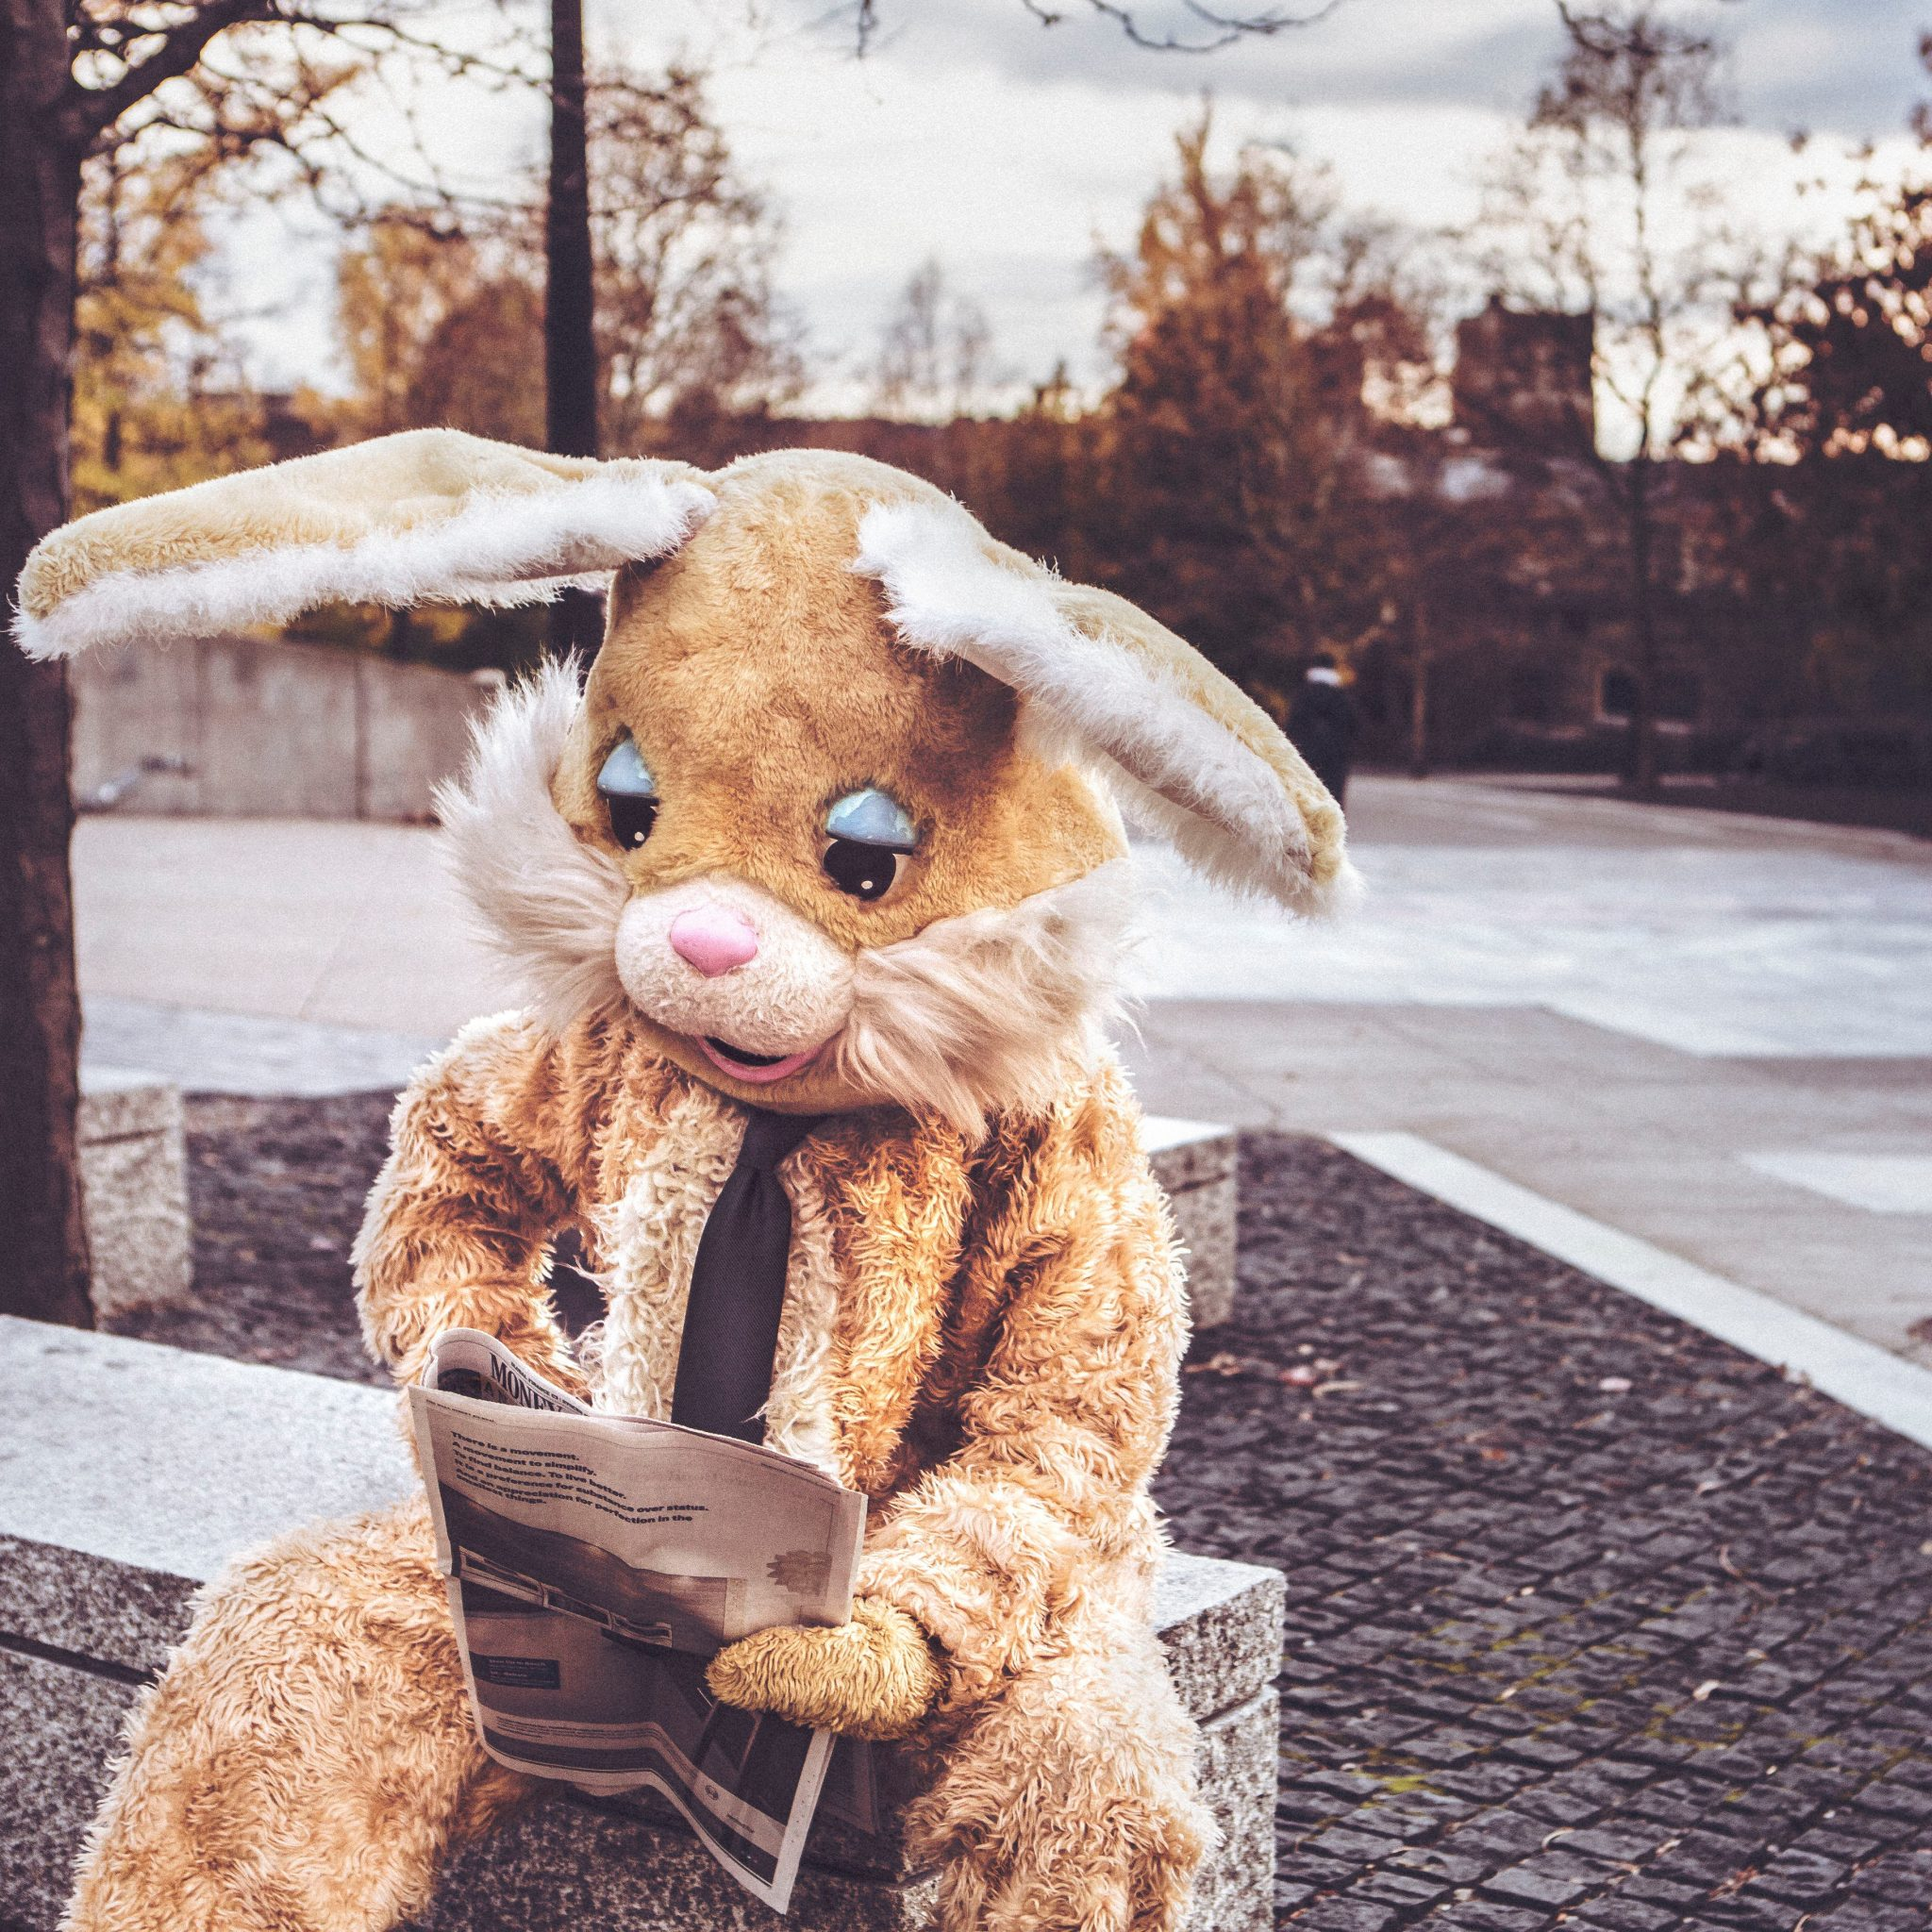 5 Marketingideen für Ostern